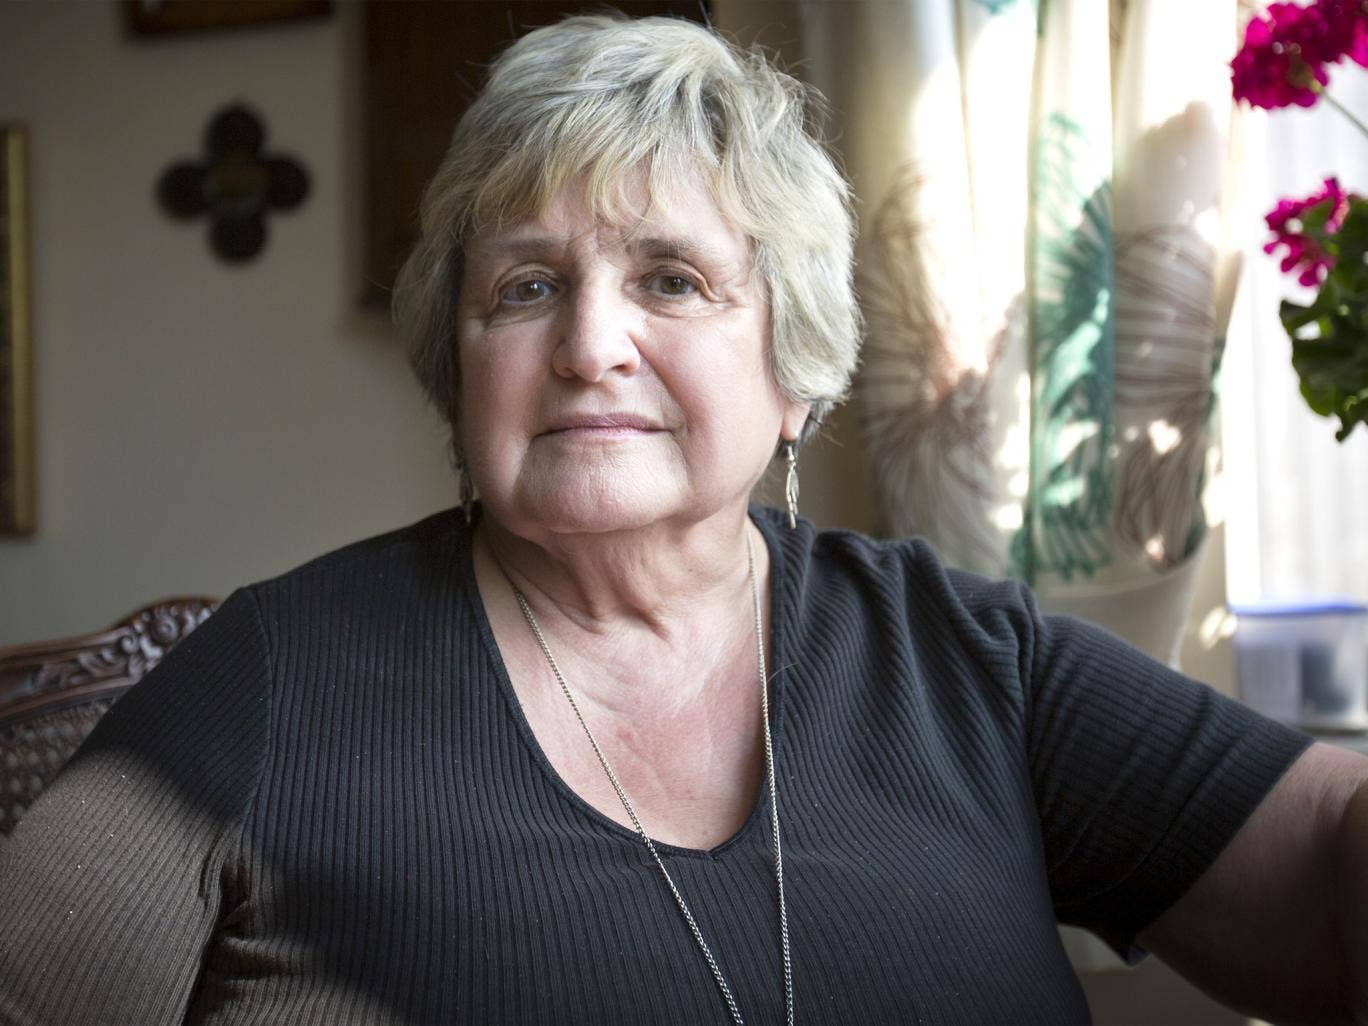 Dementia patient Shelagh Robinson at her home near Crewe